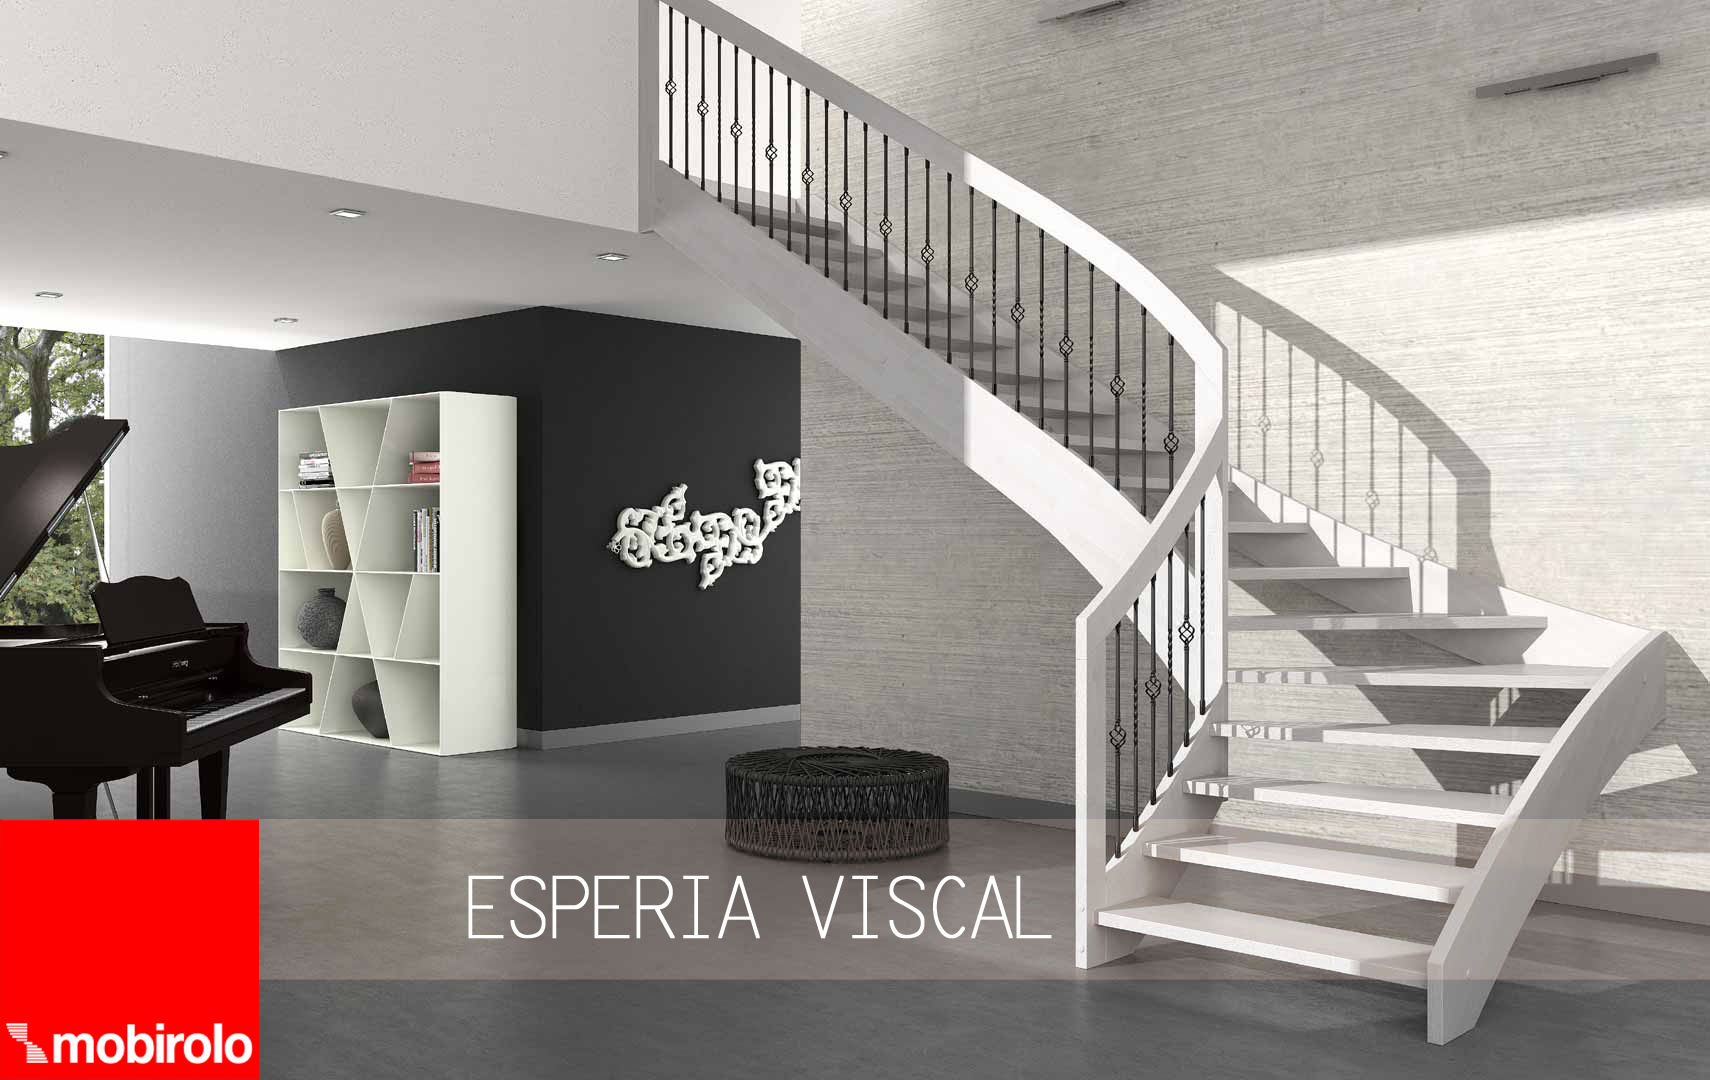 Esperia viscal la giusta scala interna per un arredamento for Arredamento scandinavo on line